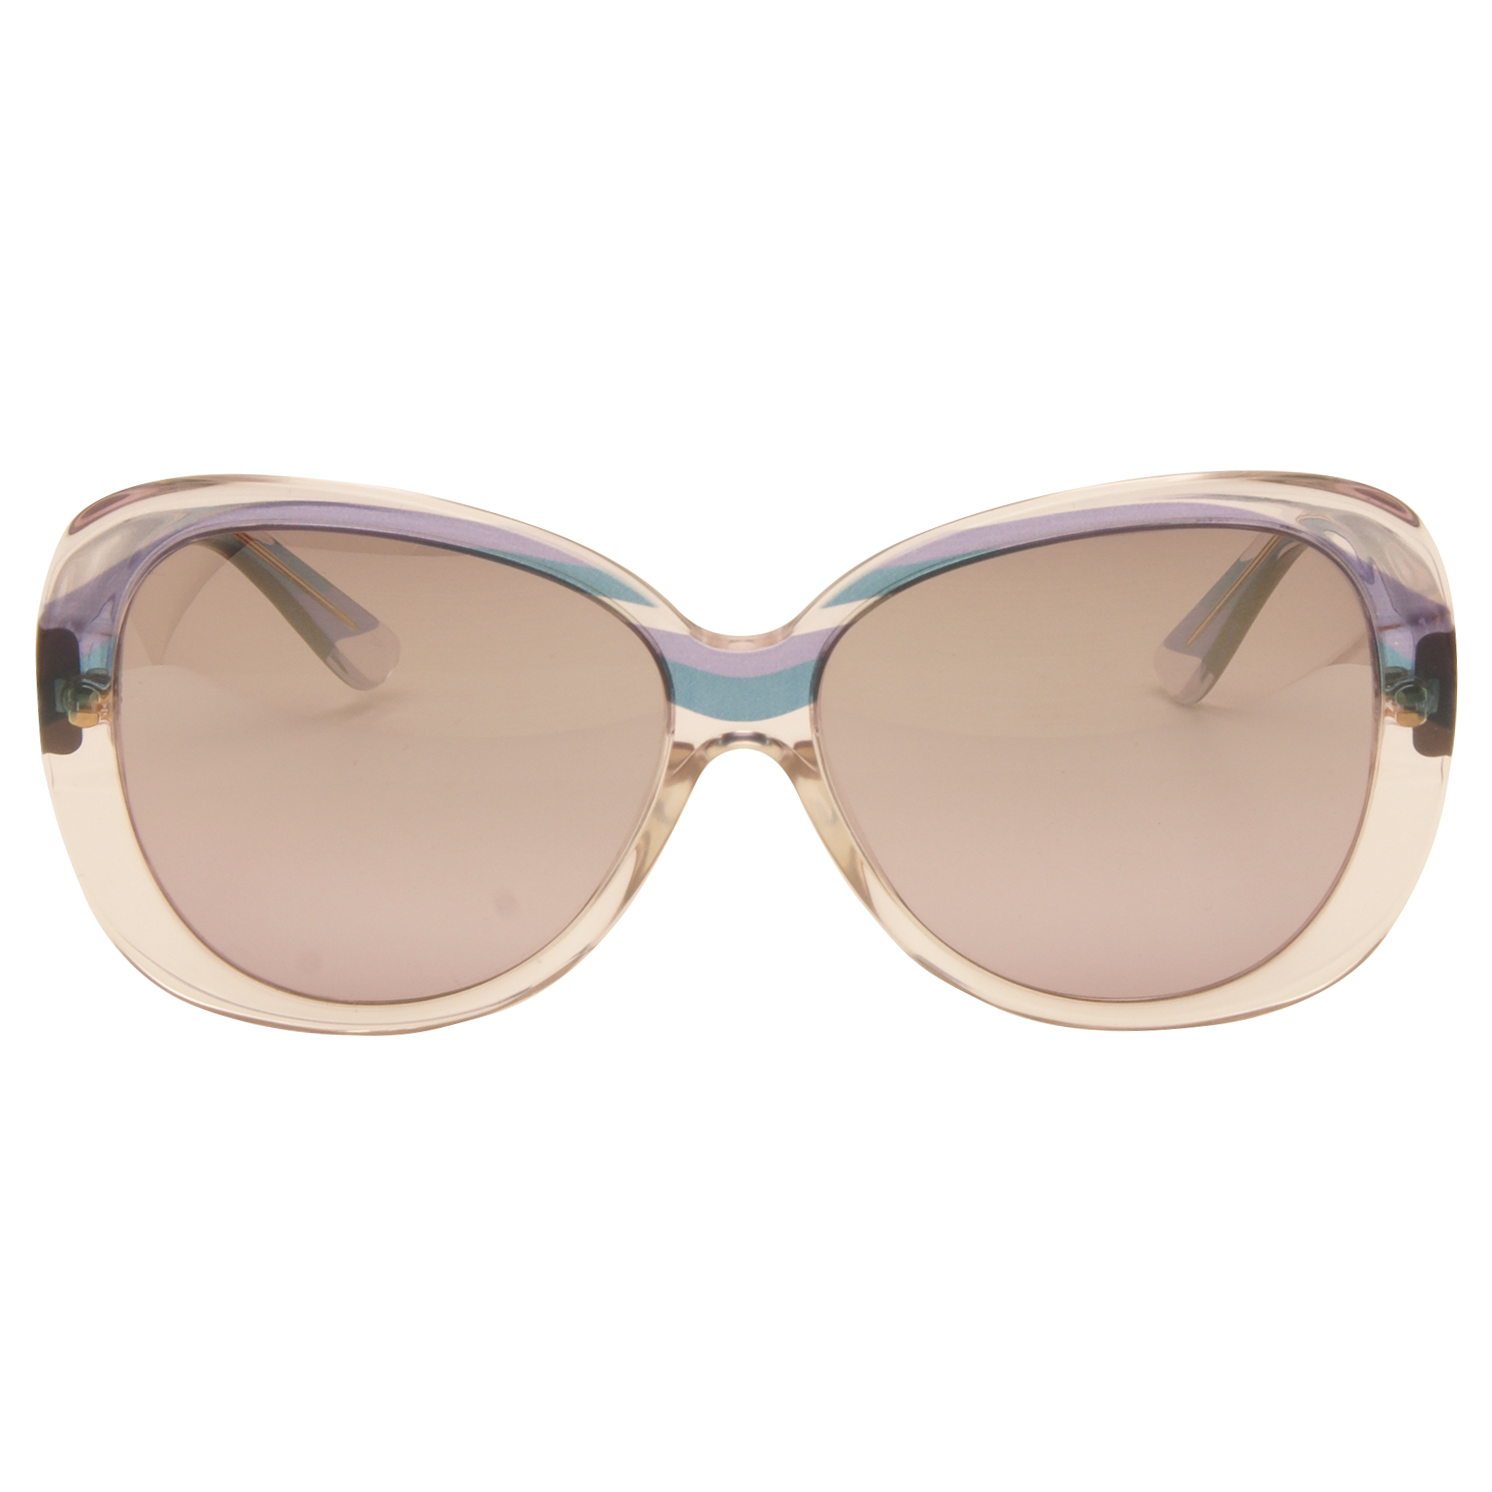 Emilio Pucci – Lilac and Blue Print Clear Oversized Style Sunglasses with Case